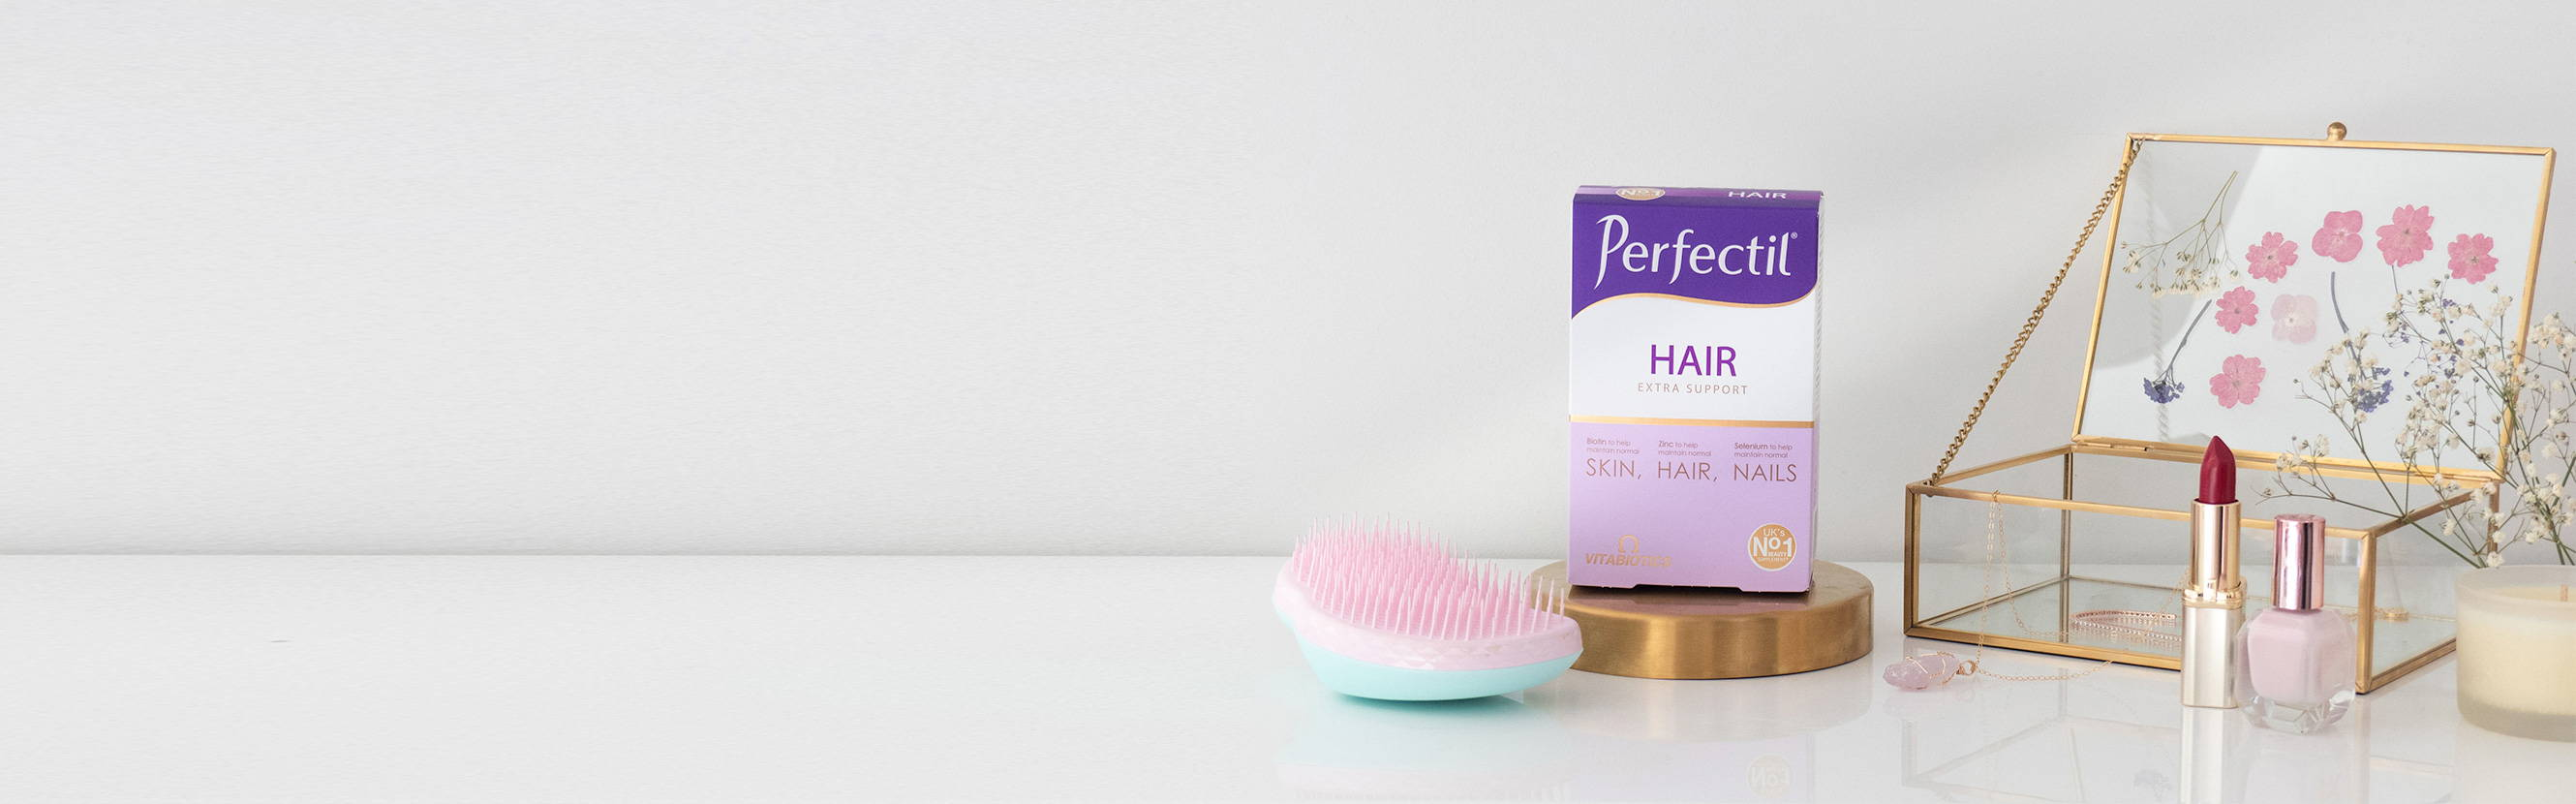 Perfectil Hair Product On Dressing Table